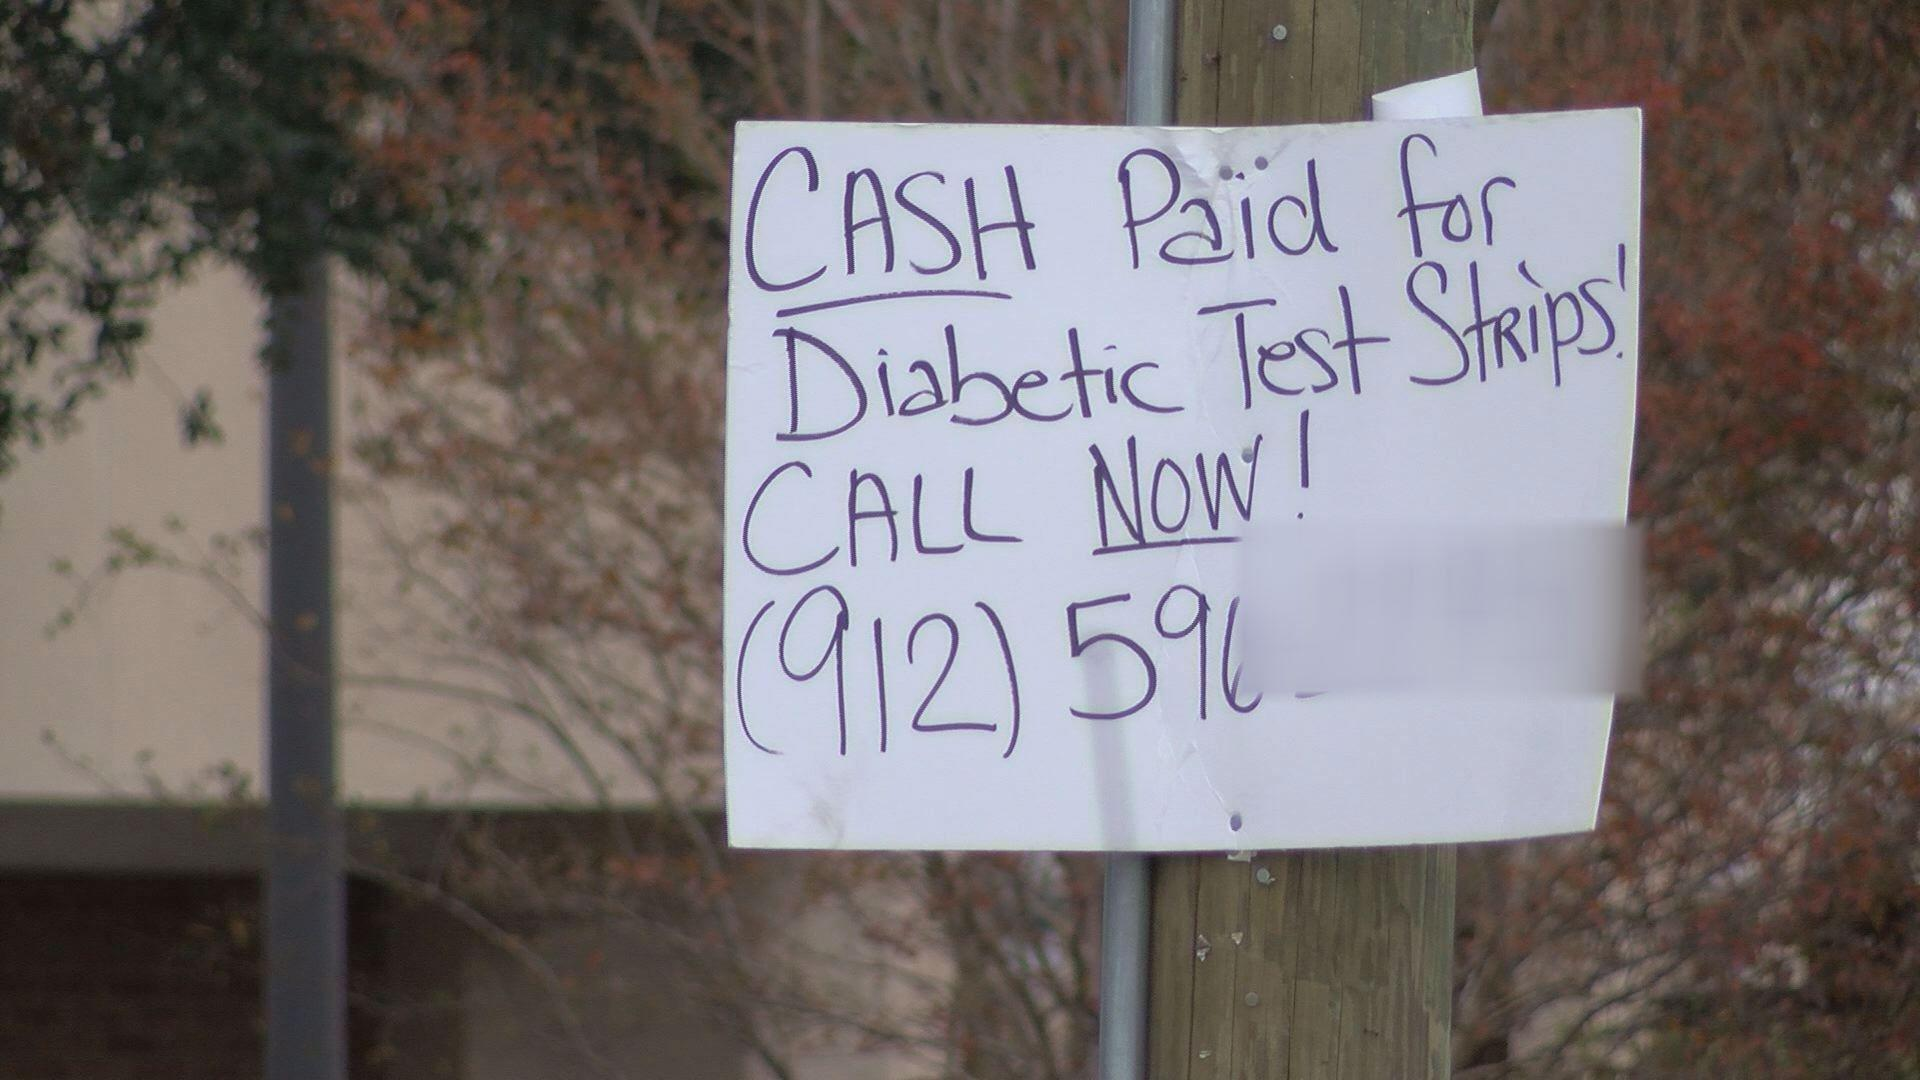 Cash For Diabetic Test Strips Near Me